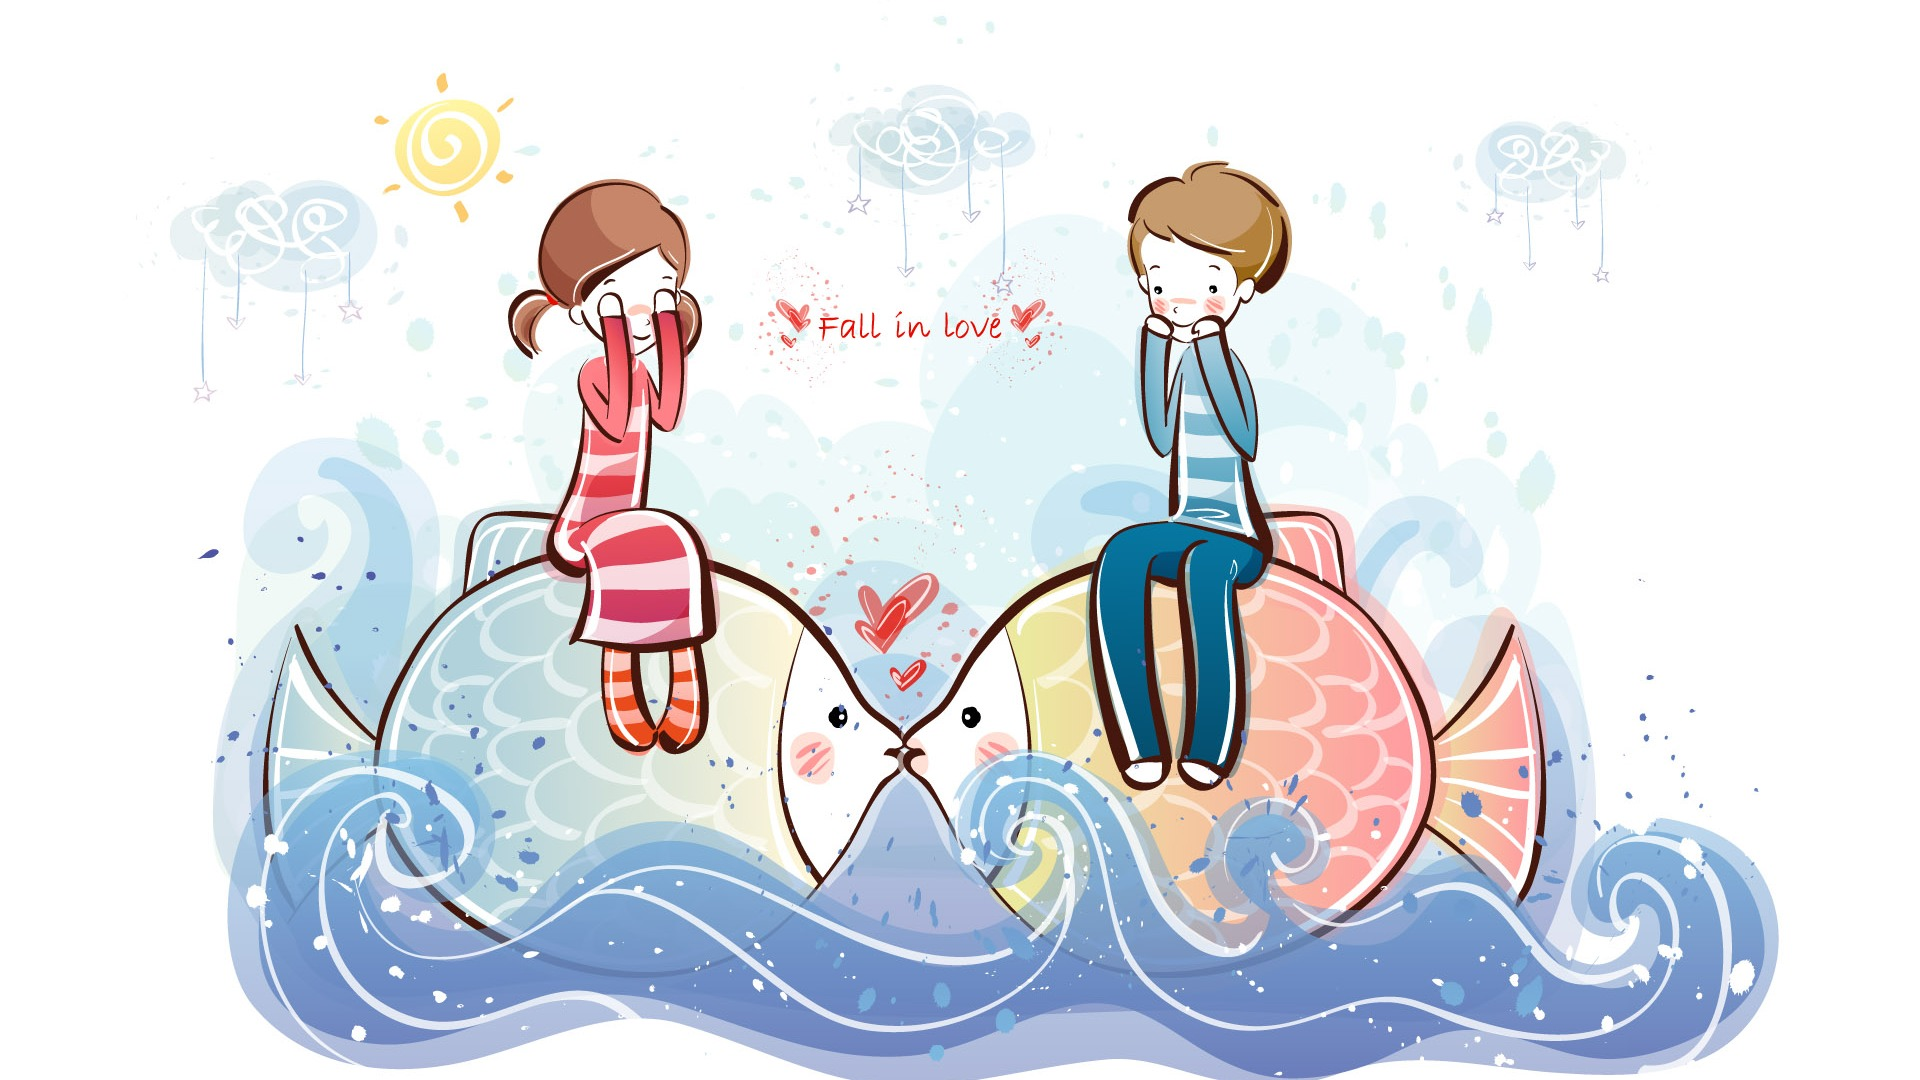 Cartoon valentine 39 s day wallpapers 2 7 1920x1080 - Cartoon valentine wallpaper ...